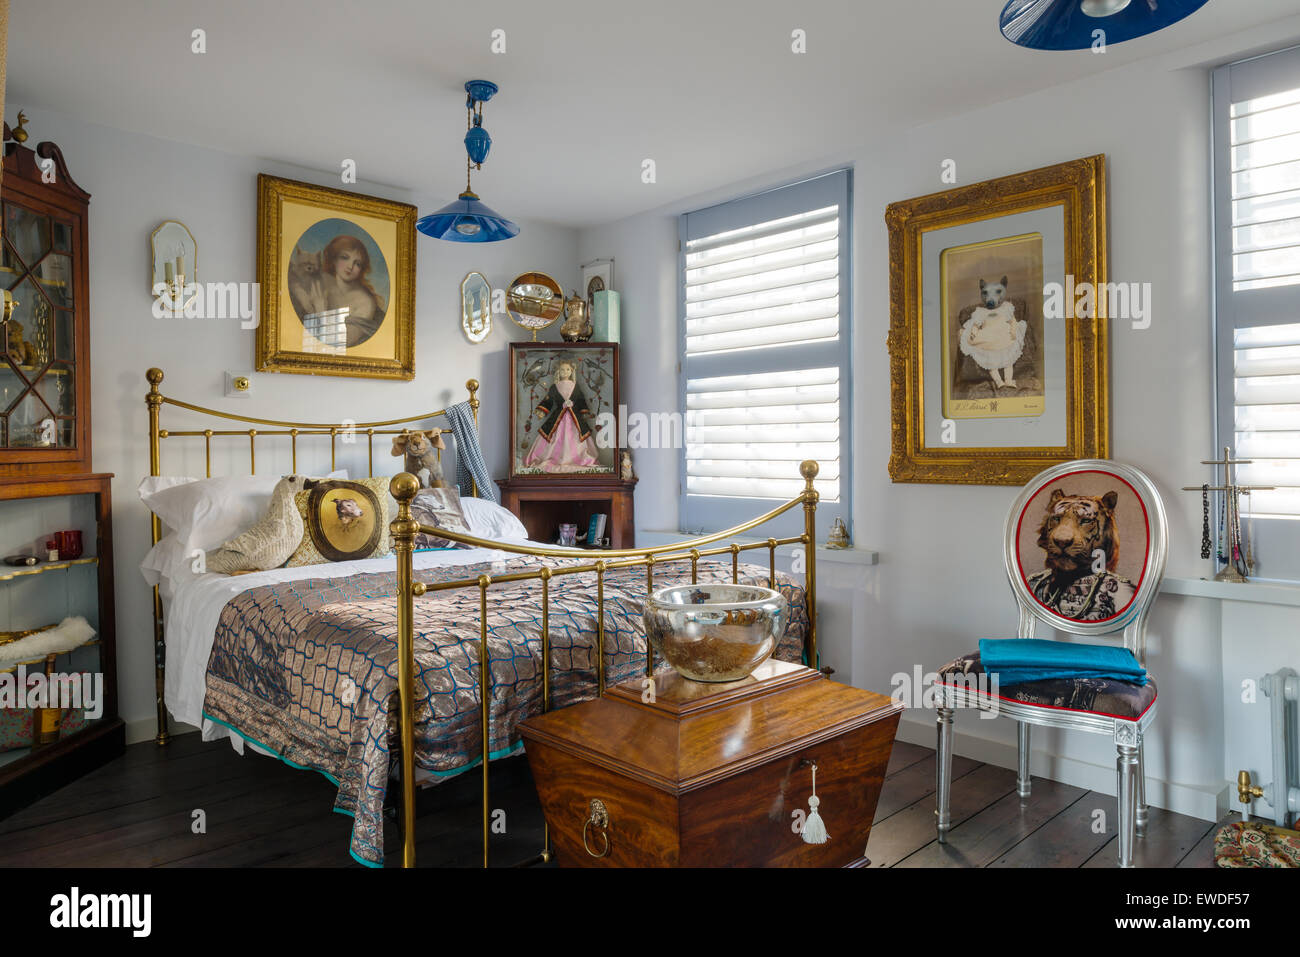 Brass framed bedstead in elegant bedroom with antique wine cooler and Visitorian dining chair - Stock Image